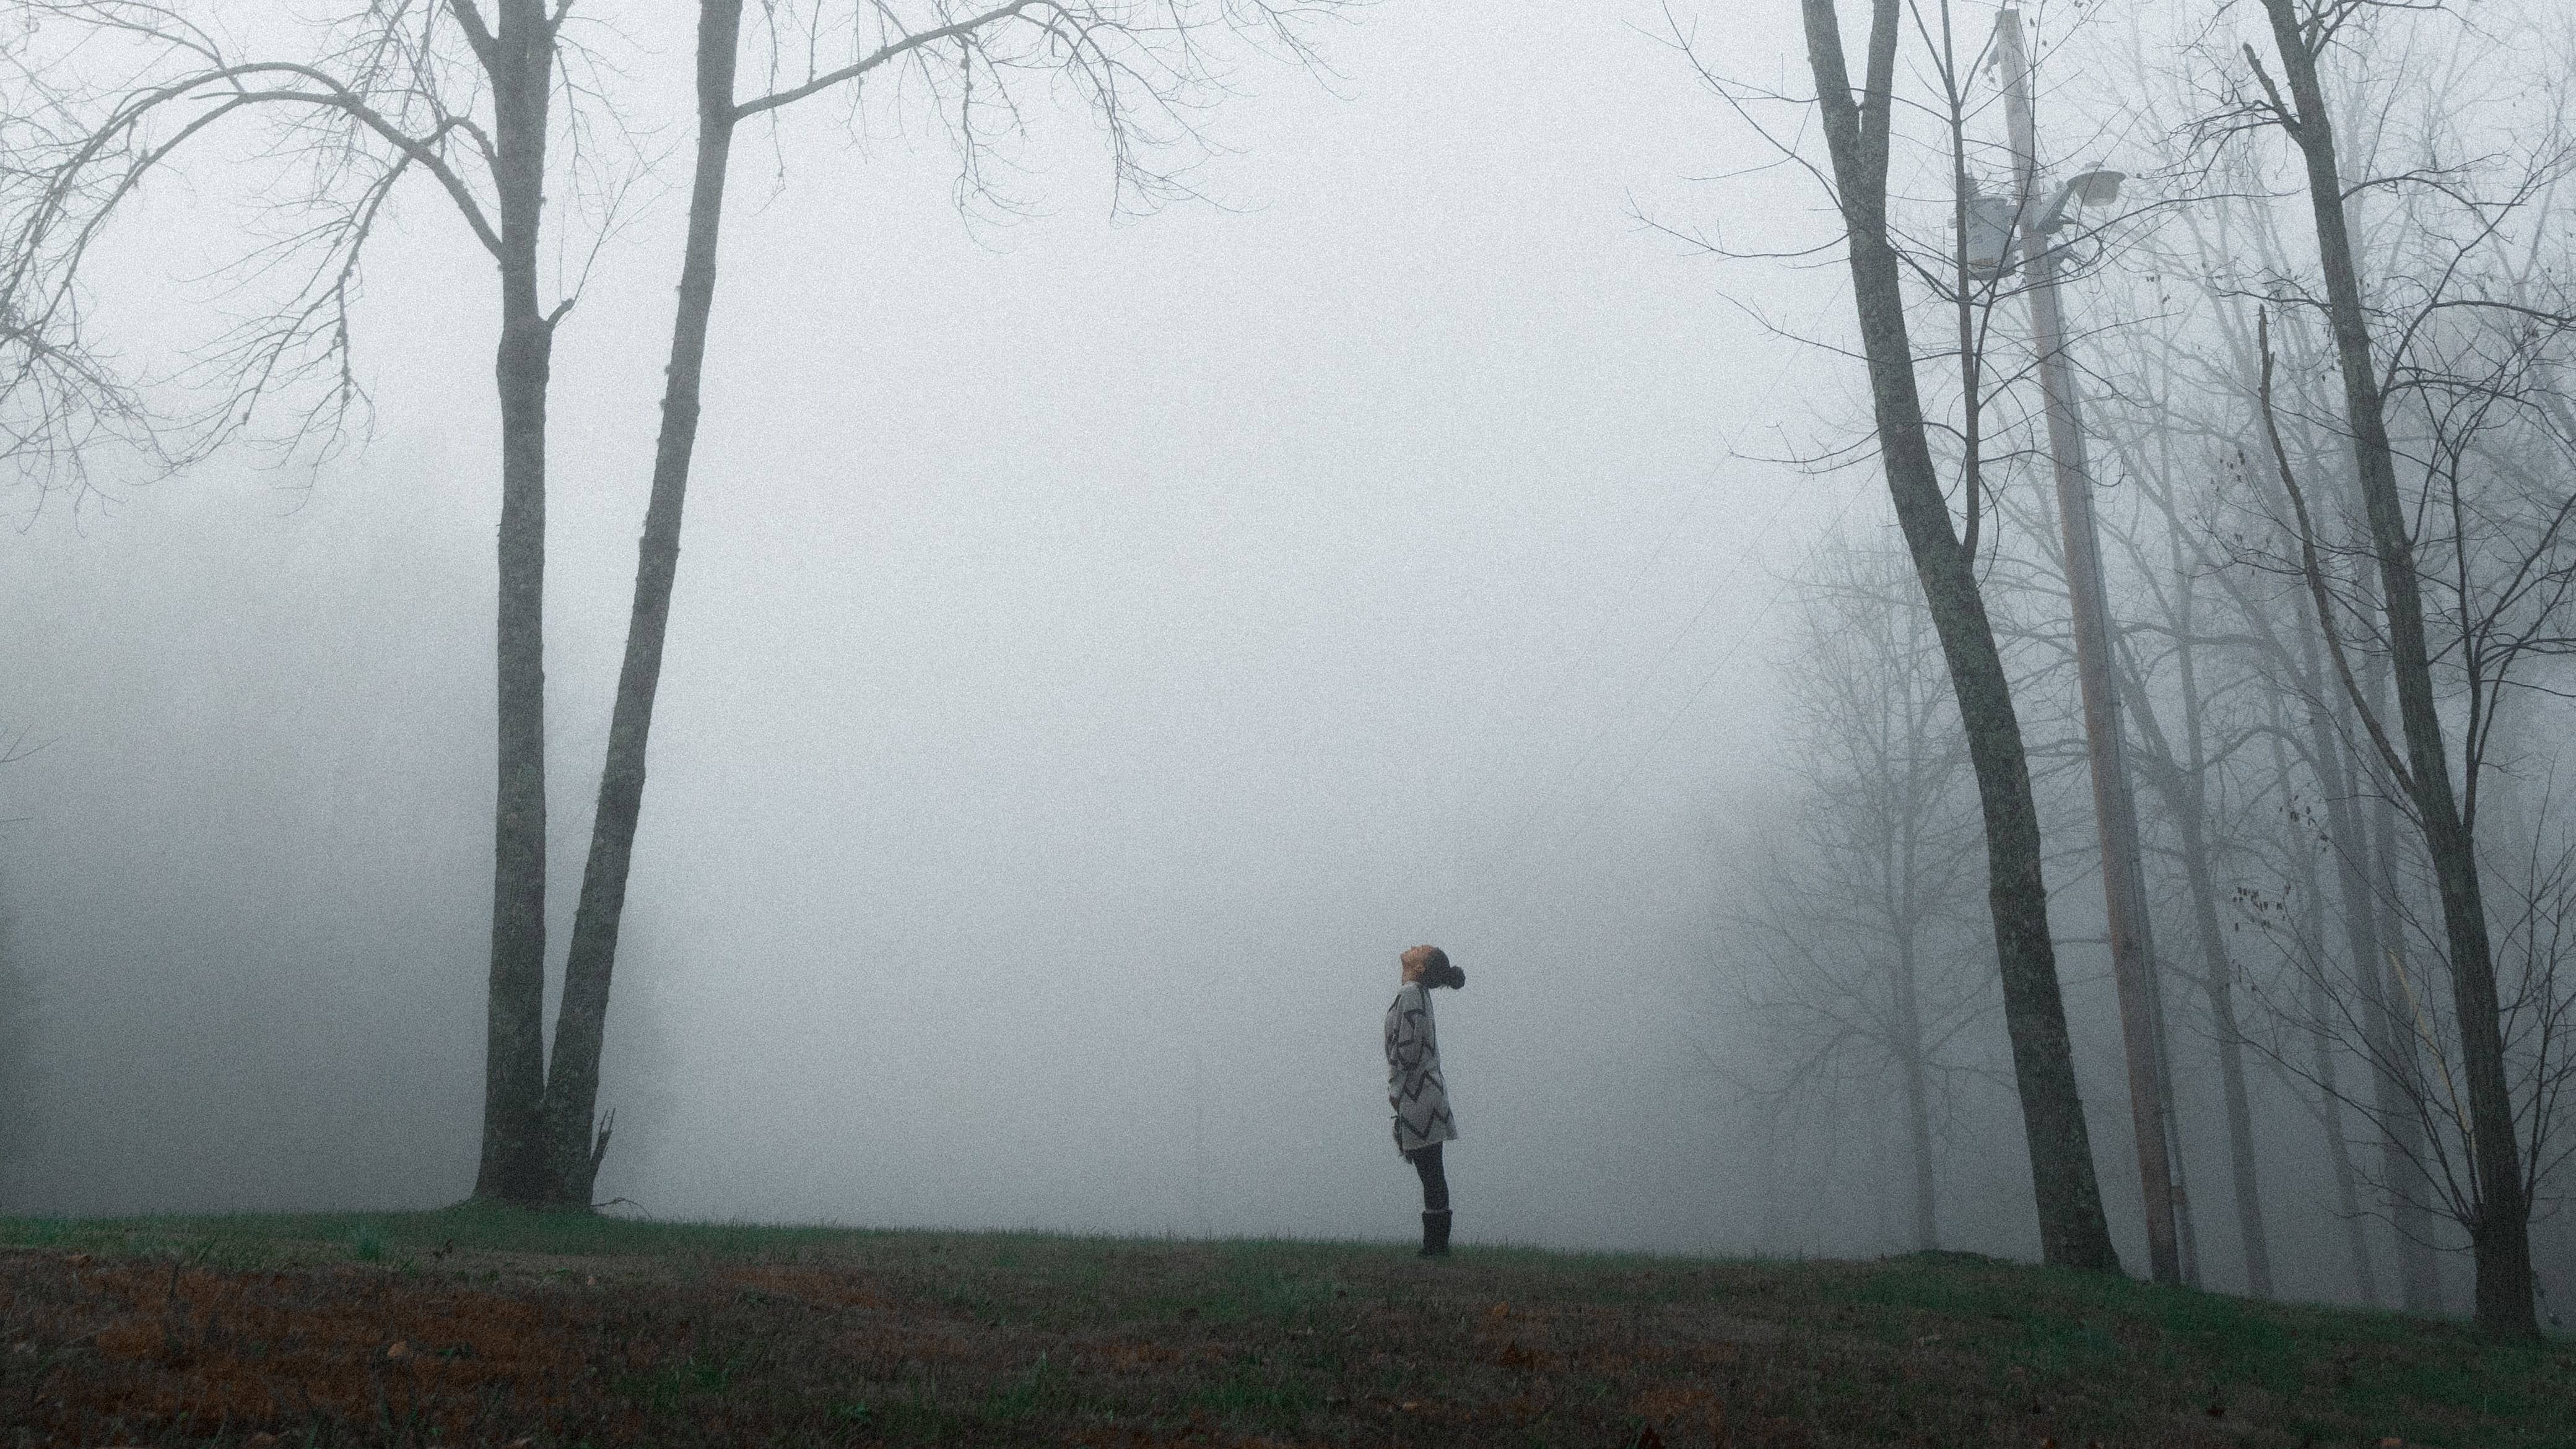 How To See Beyond The 'Money FOG'